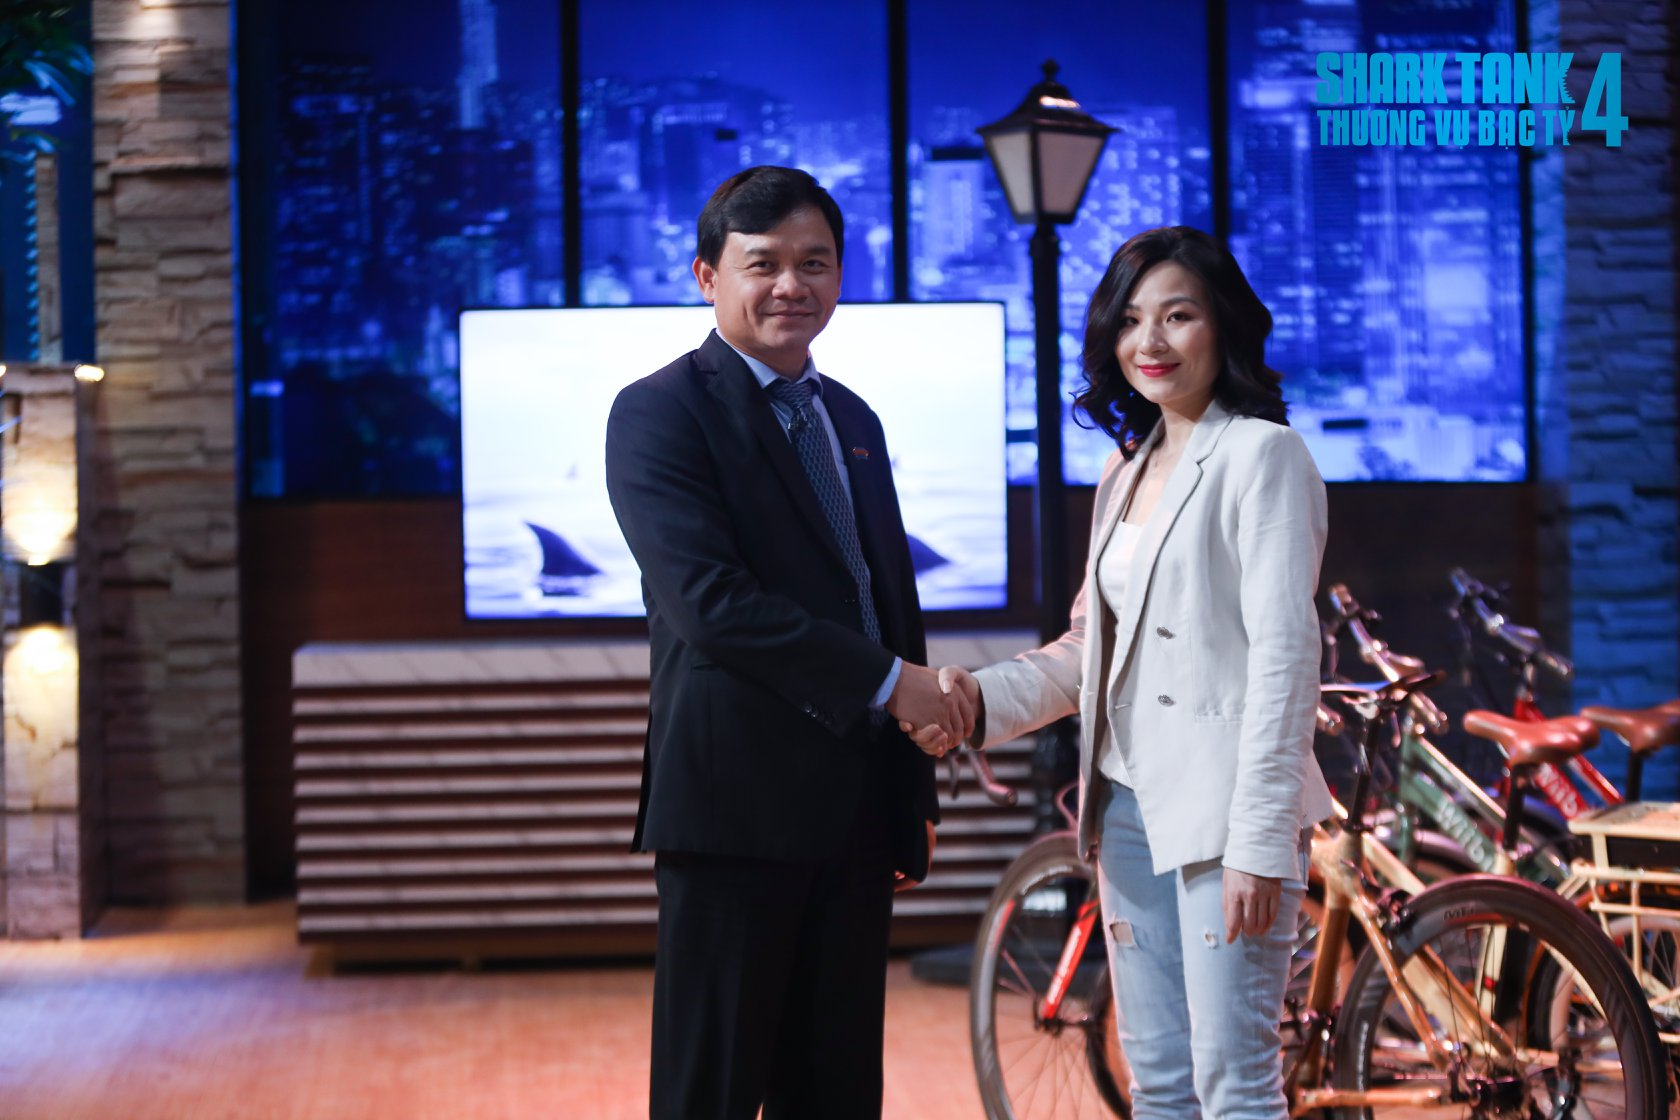 Nguyen Xuan Phu (L) and Nguyen Thi Thu Hang seal the deal in the second episode of Shark Tank Vietnam season 4. Photo courtesy of Shark Tank Vietnam.